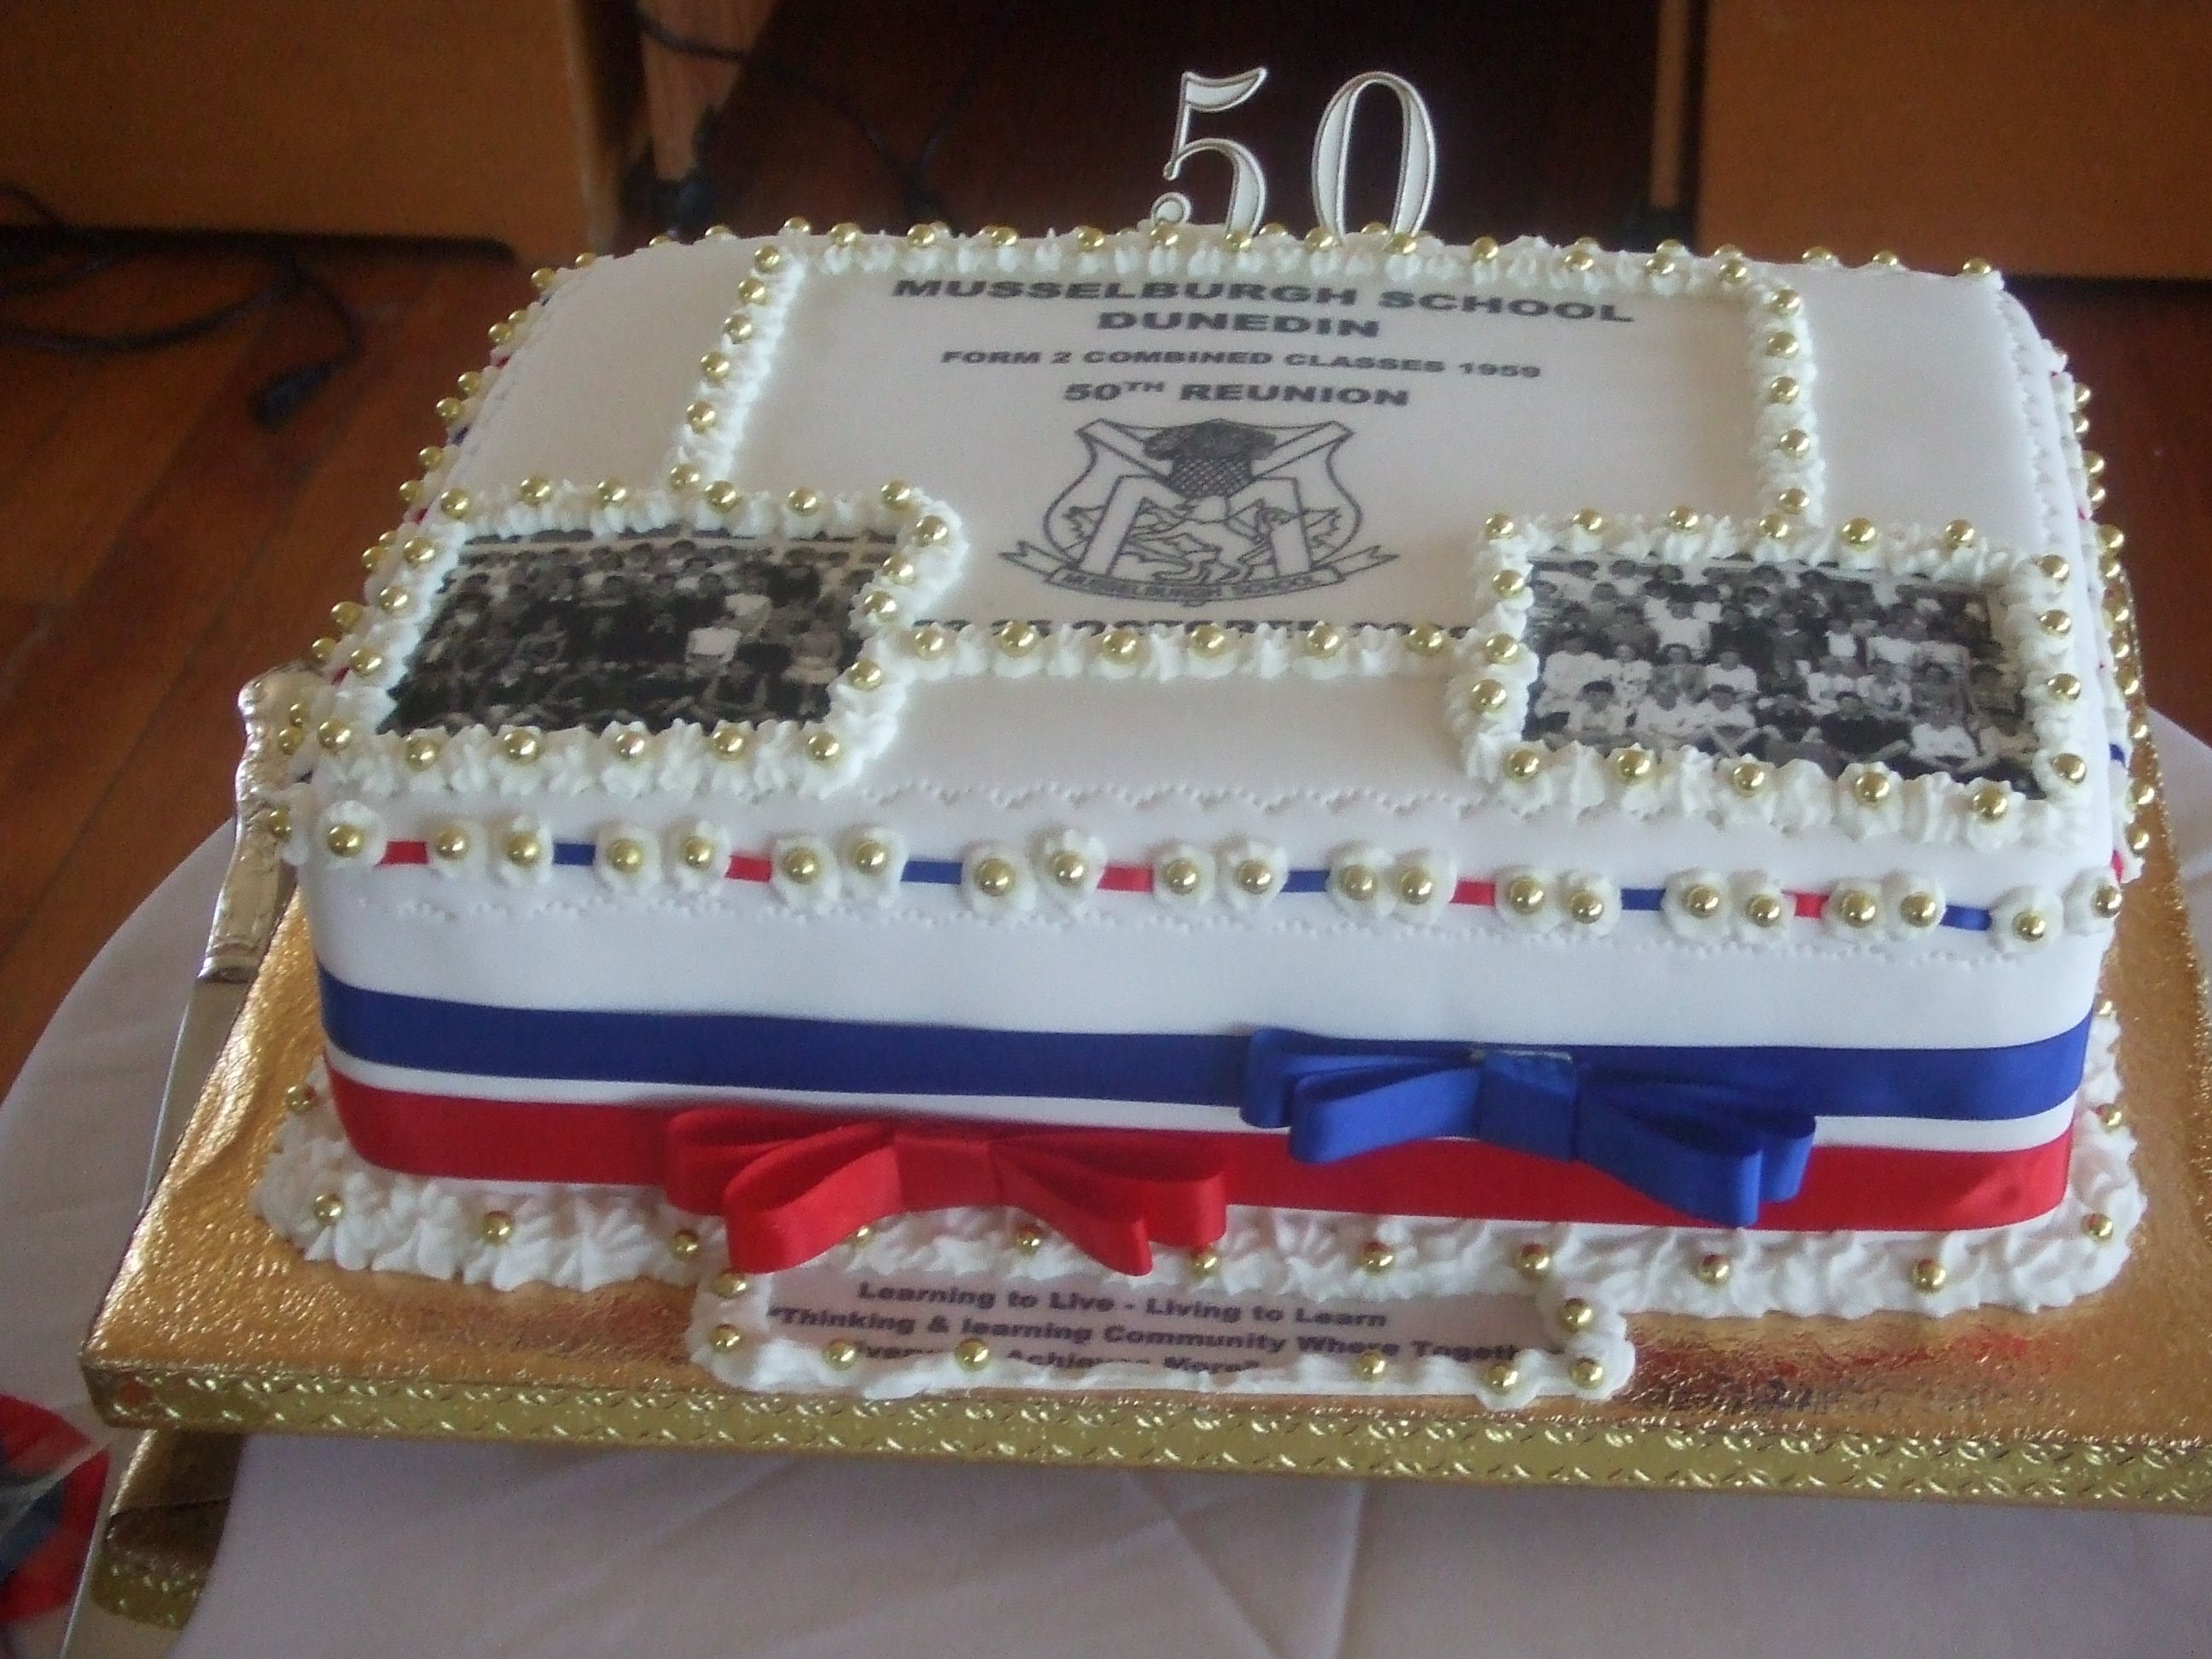 a 50th class reunion cake with images from the 2 clases | 50th Class ...